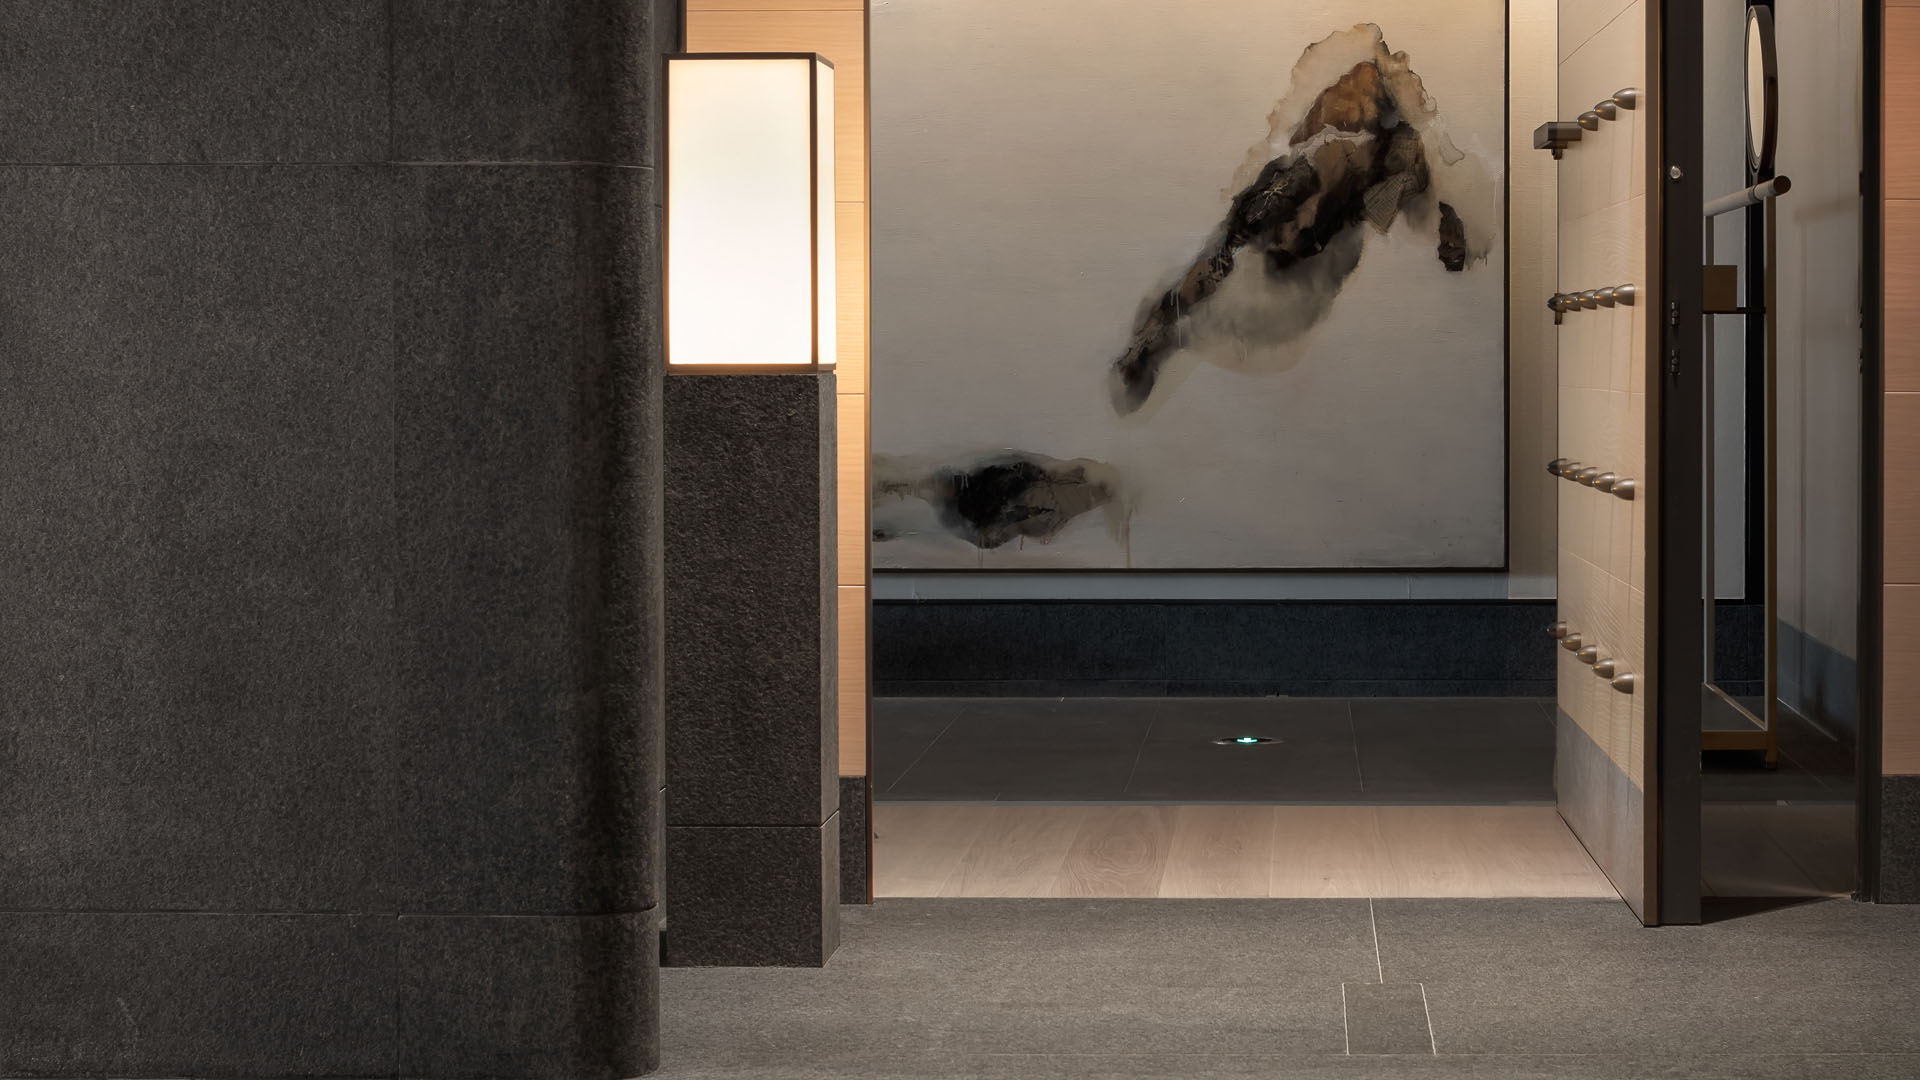 Chi Wing Lo's Cloud Residence at Damei Center in Beijing is considered one of his finest interiors realized in China, it has become a reference for his synthesis in design, craftsmanship and contemporary living today.